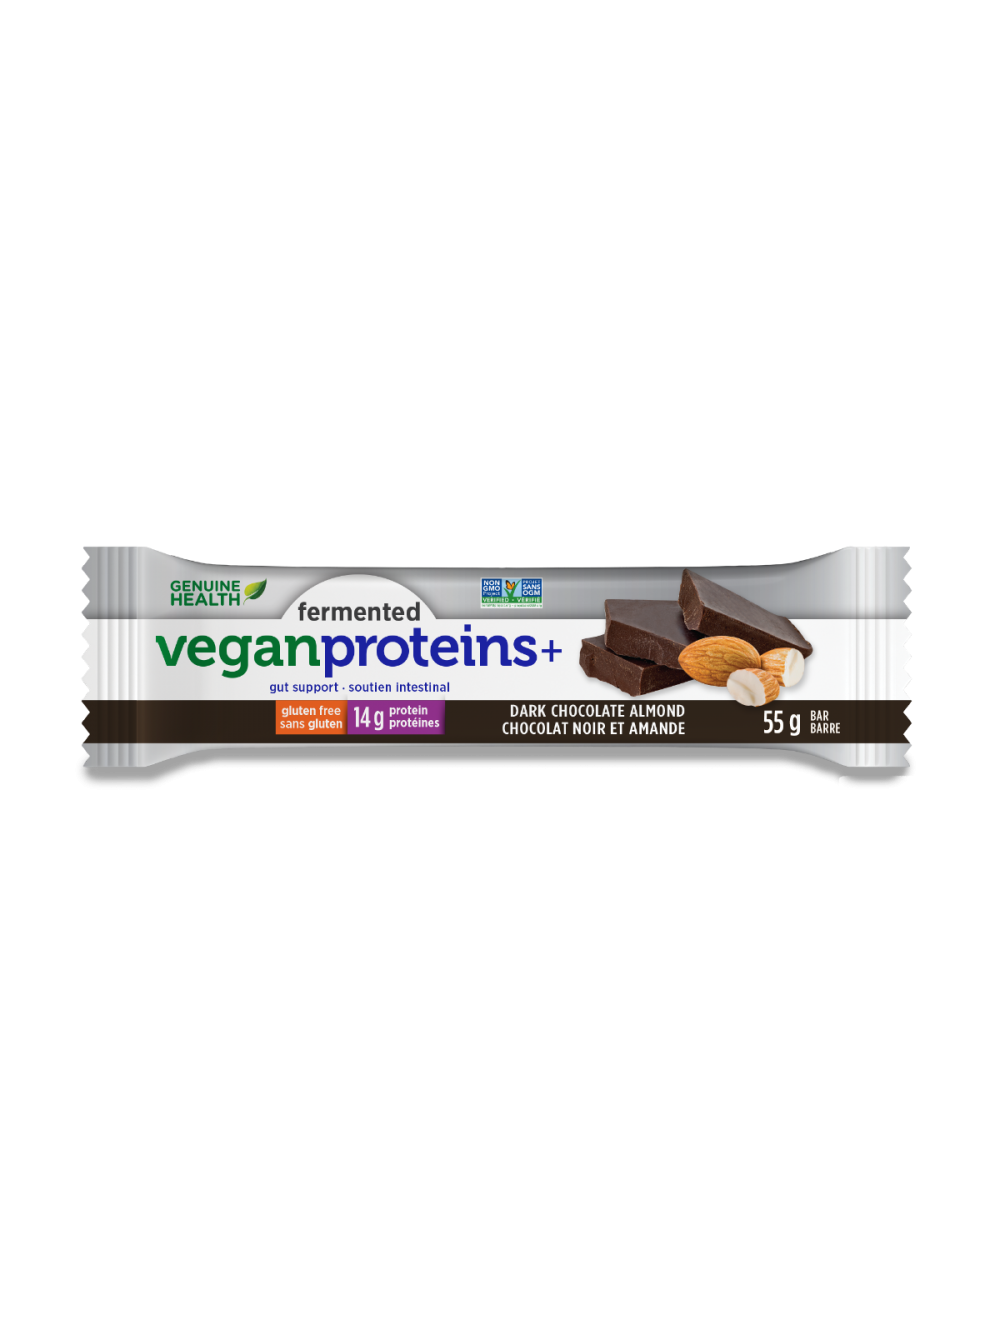 Fermented Vegan Proteins+ Bar